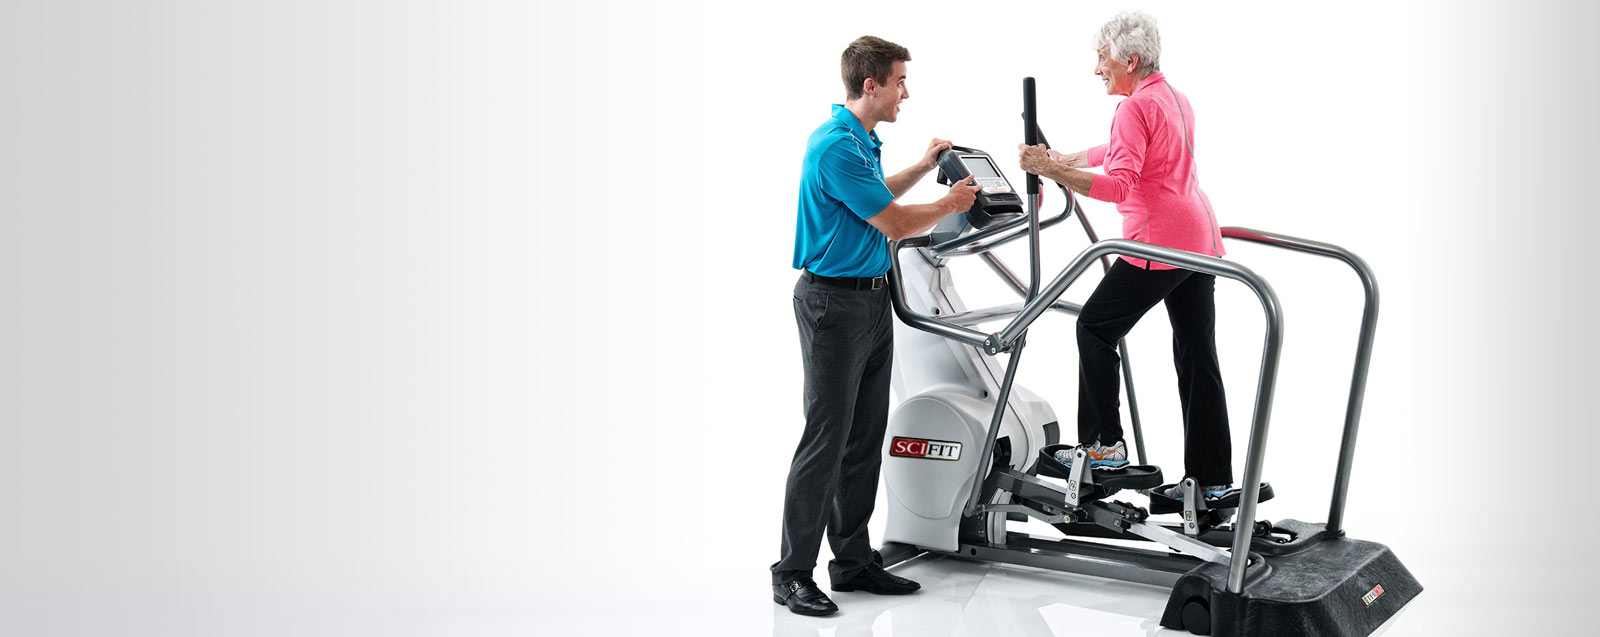 Scifit Fitness Equipment at Fitness Showrooms